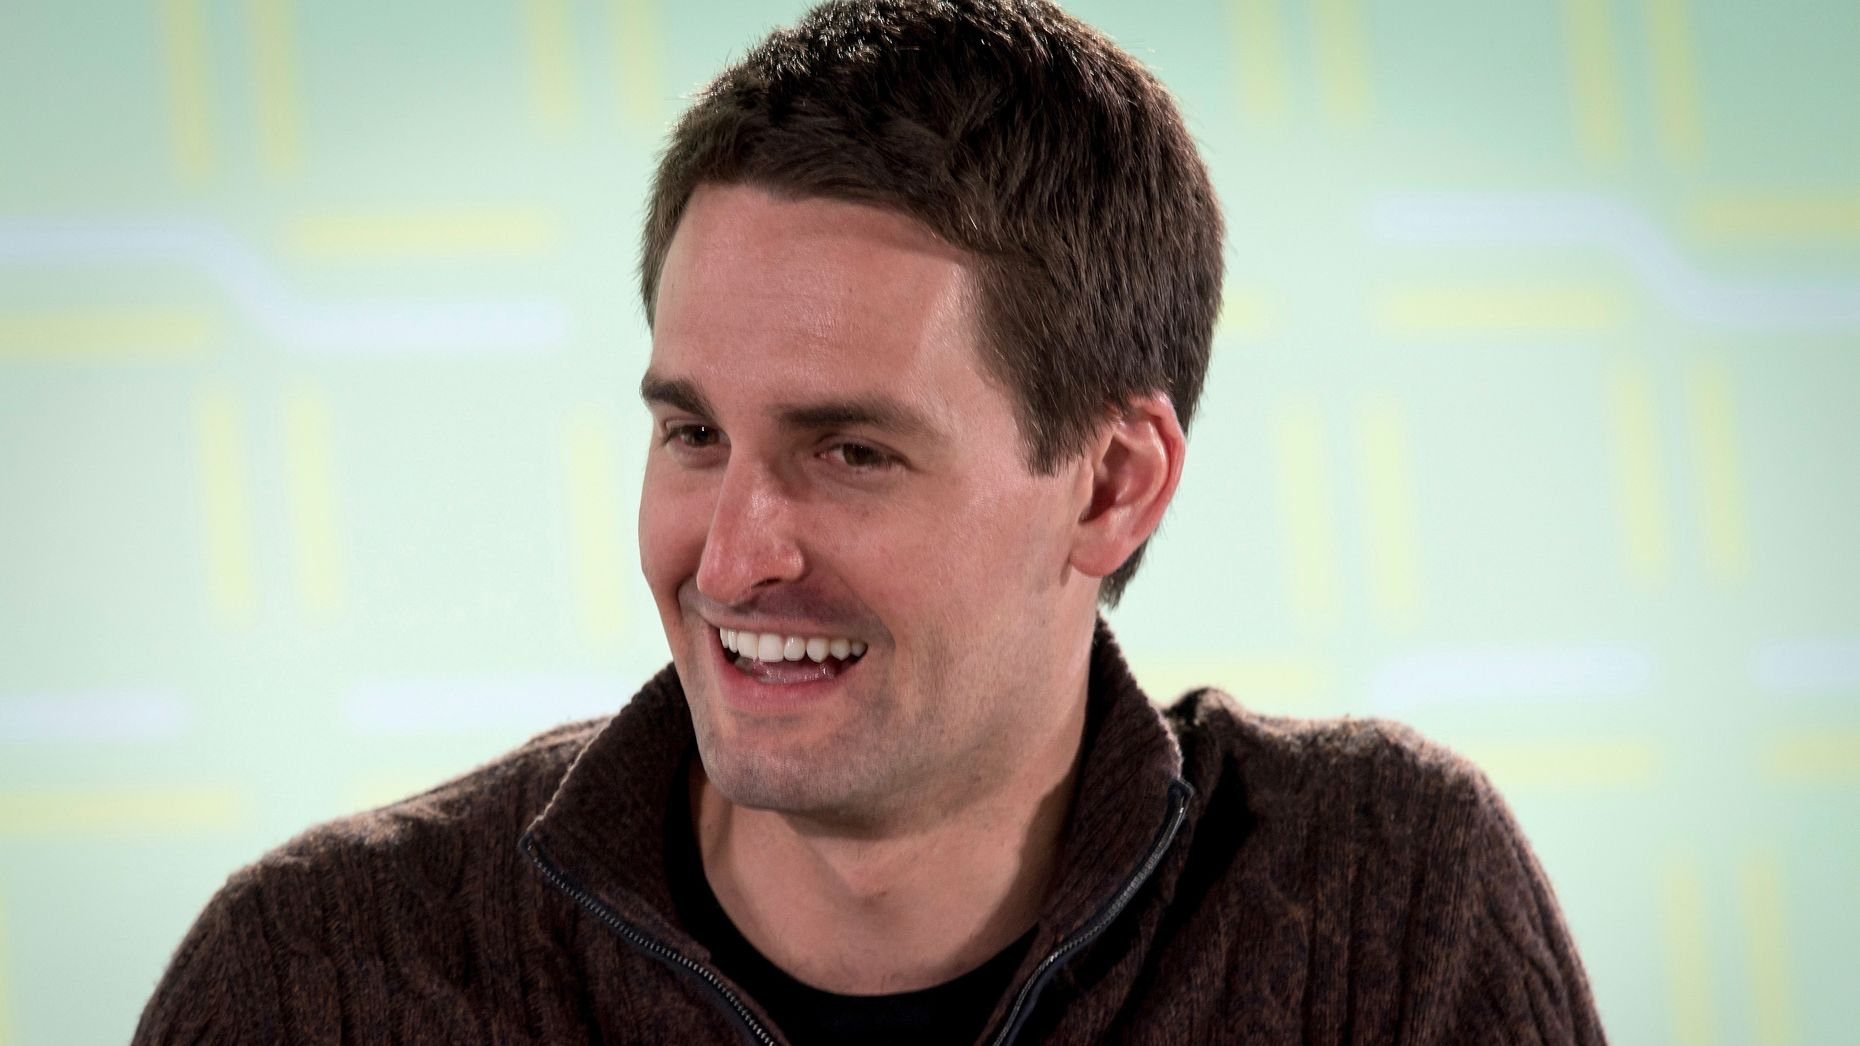 Snap CEO Evan Spiegel. Photo by Bloomberg